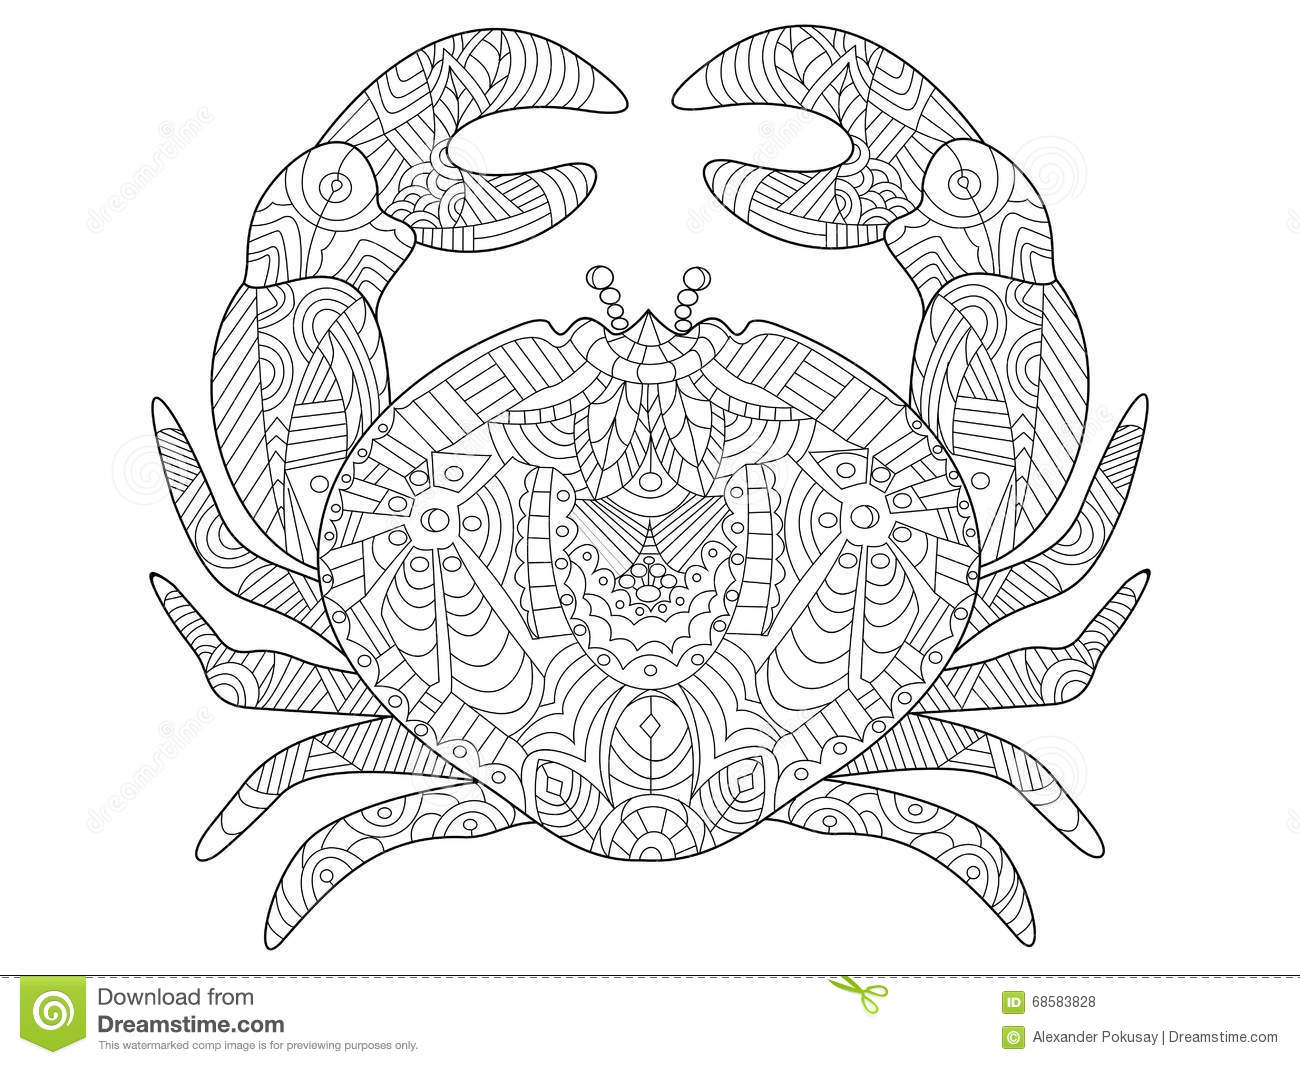 Beating Blah Blah Blahs besides Mountain Climbing Clip Art further Extreme Sport Rock Climbing 20890 additionally You Break It You Rebuild It also Saint Christopher Coloring Page. on effort cartoon